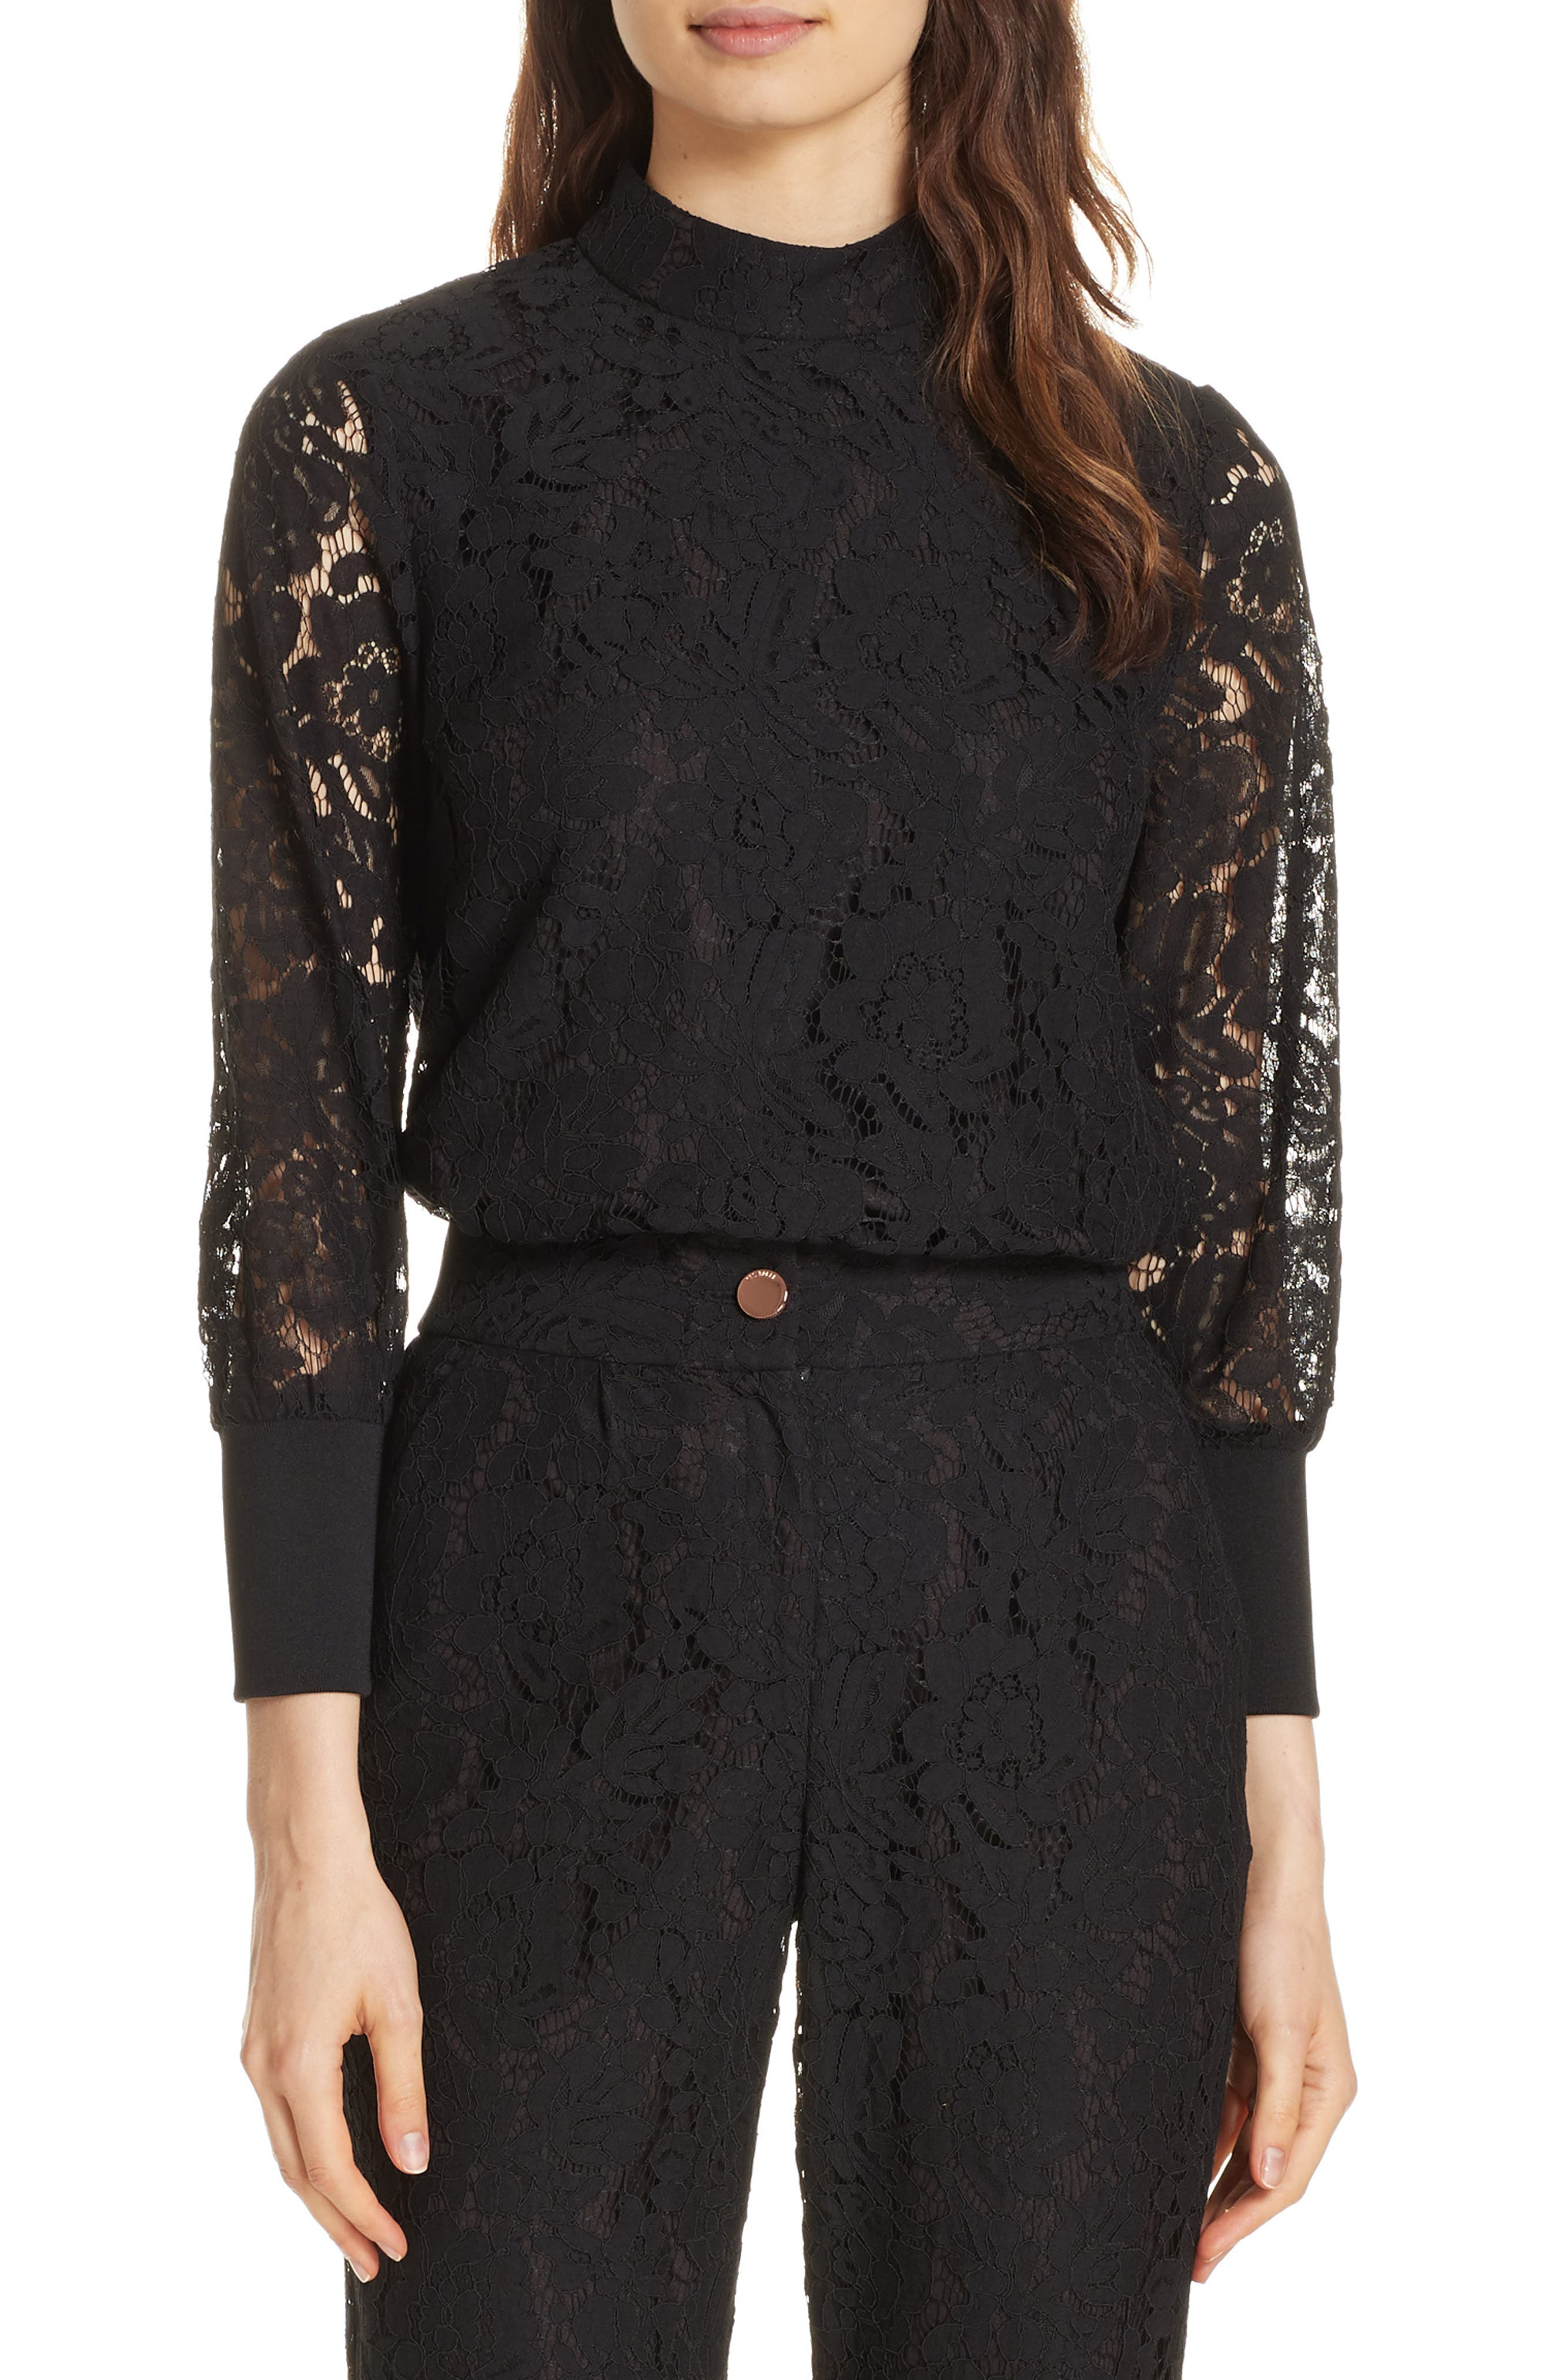 Dilly Lace High Neck Blouse,                             Main thumbnail 1, color,                             BLACK